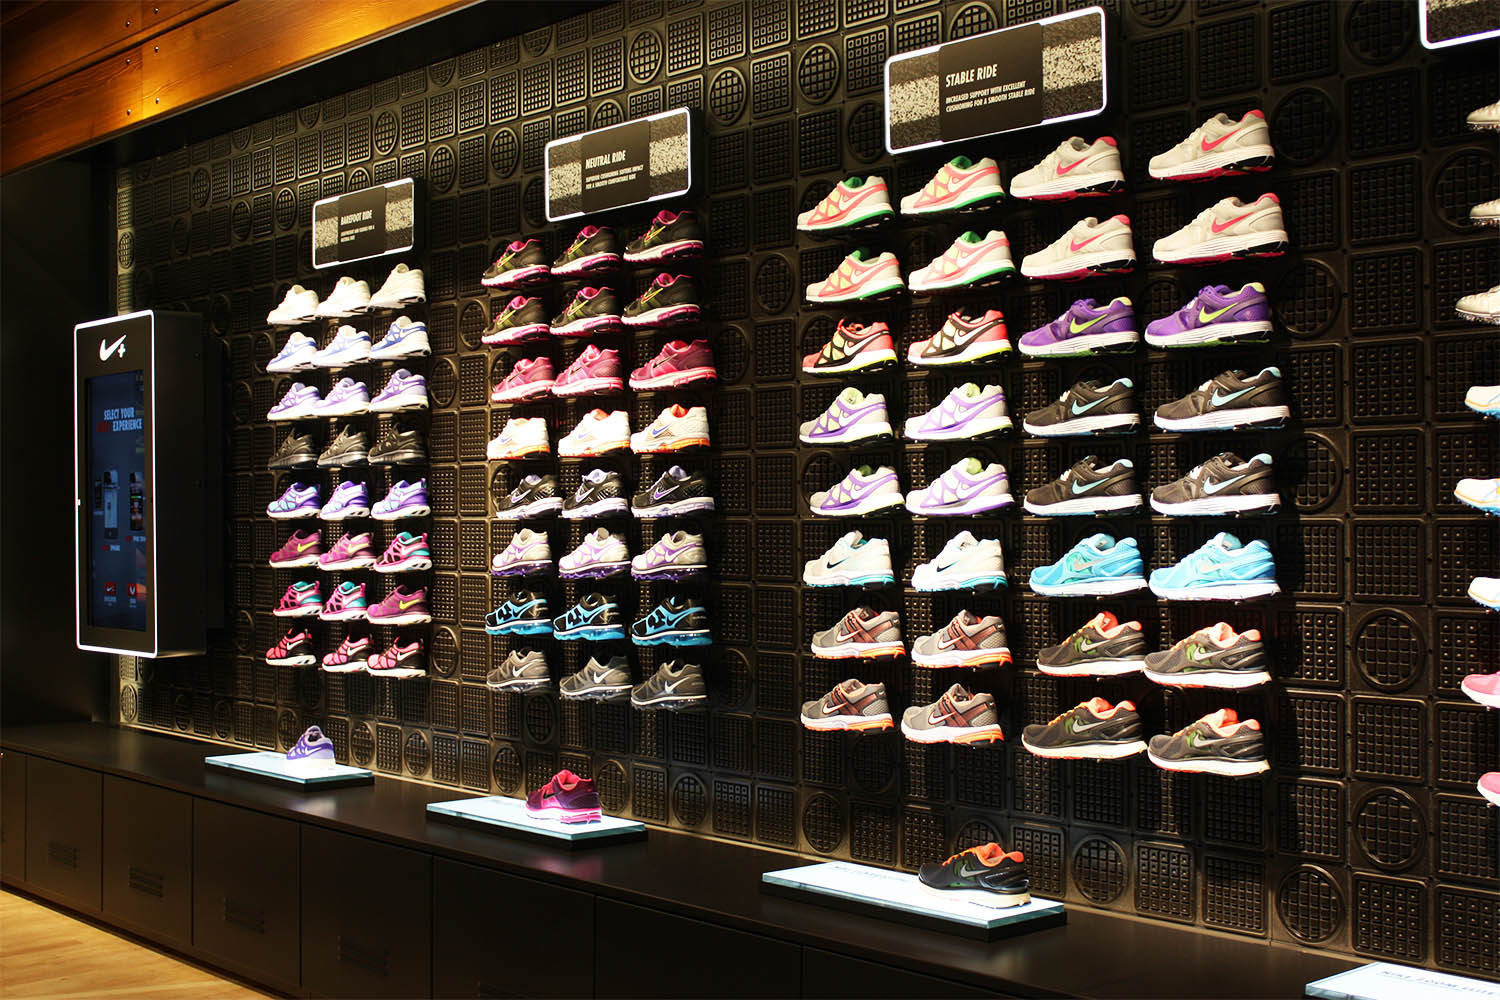 Nike Trainer Display